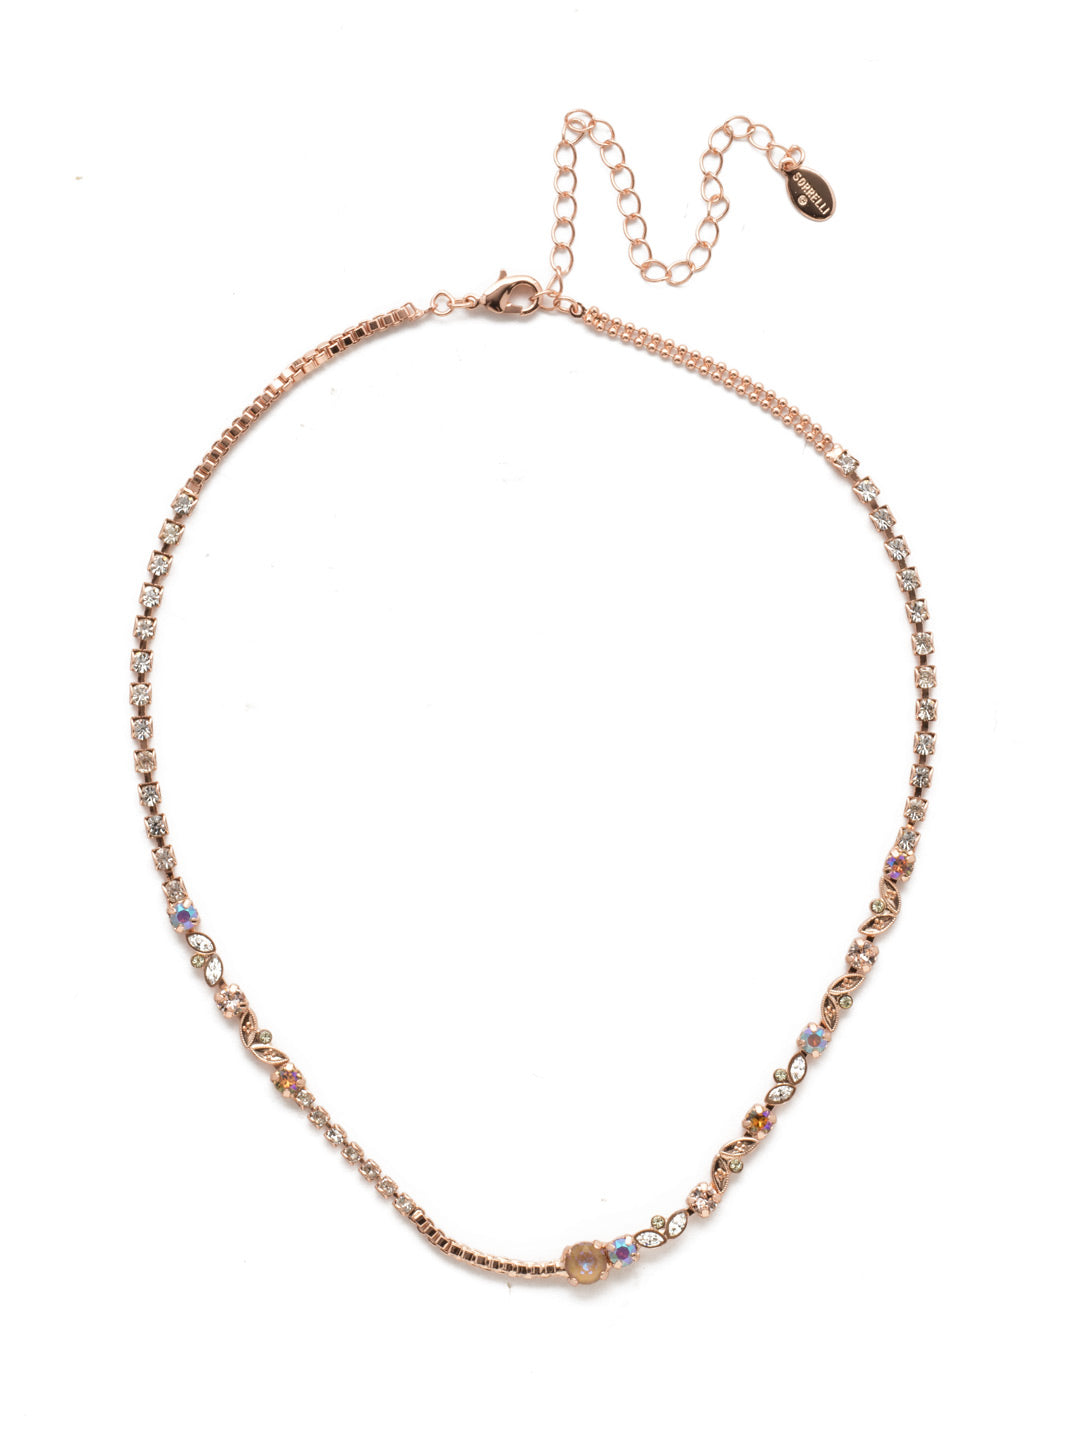 Juliette Tennis Necklace - NEN13RGROG